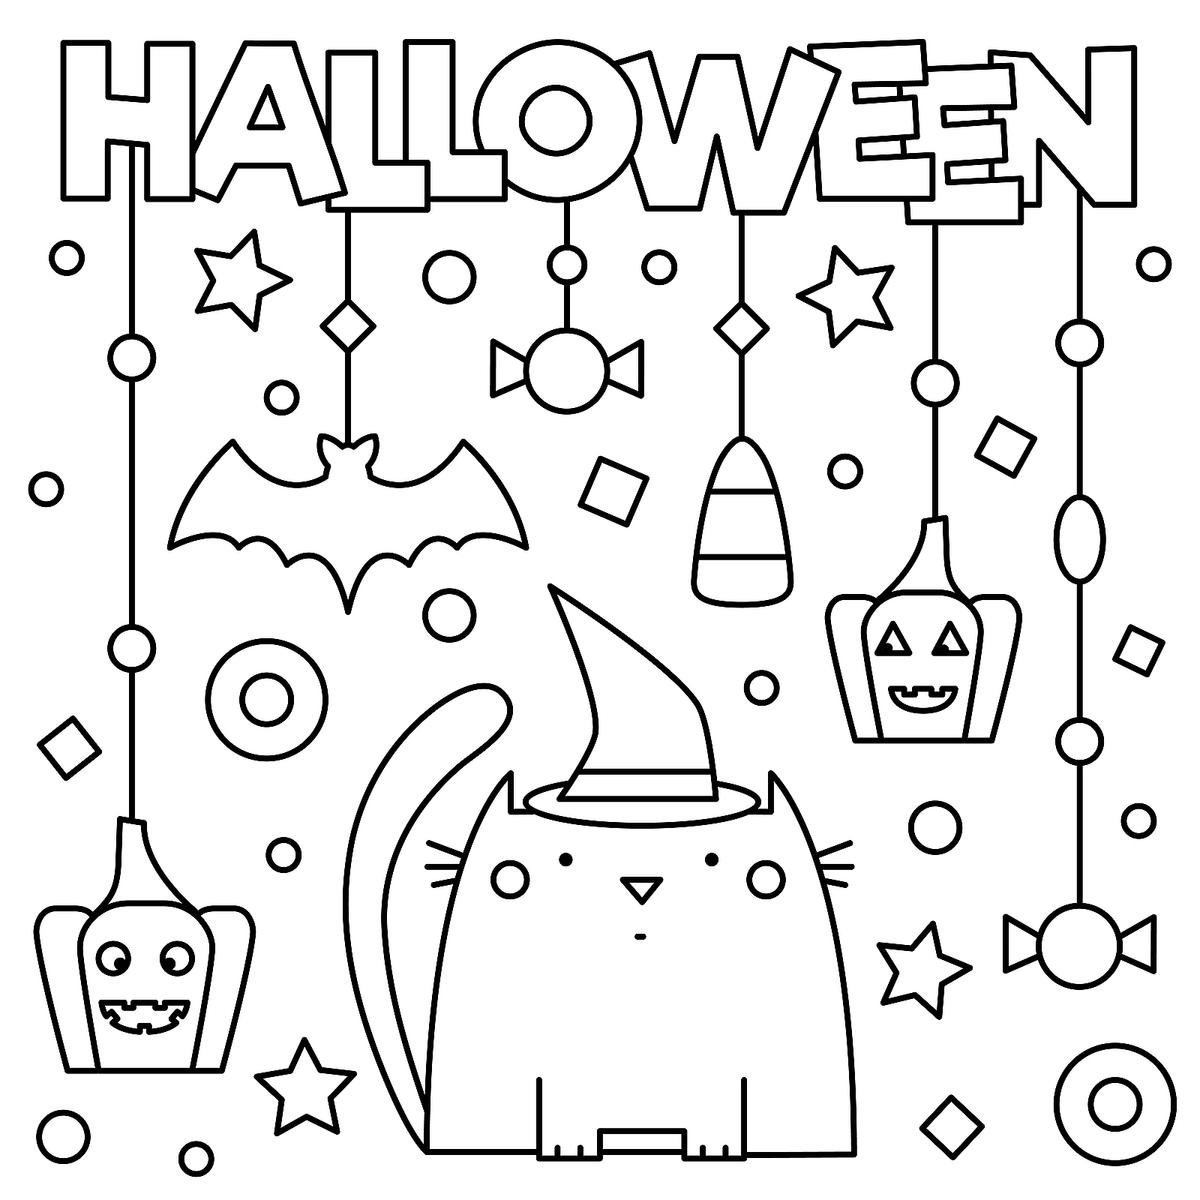 coloring templates halloween halloween free to color for kids halloween kids coloring templates coloring halloween